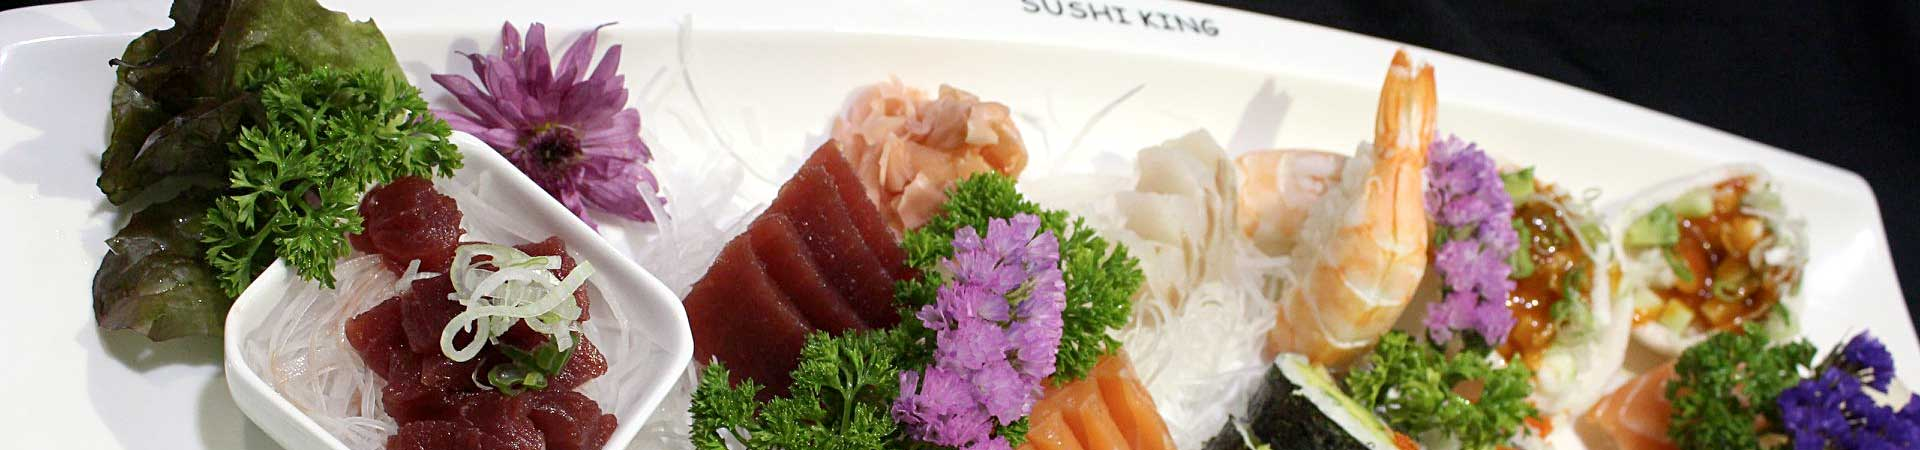 https://www.goodmorningtenerife.com/wp-content/uploads/2018/04/02_slide_sushi-king-1920×450-good-morning-tenerife.jpg